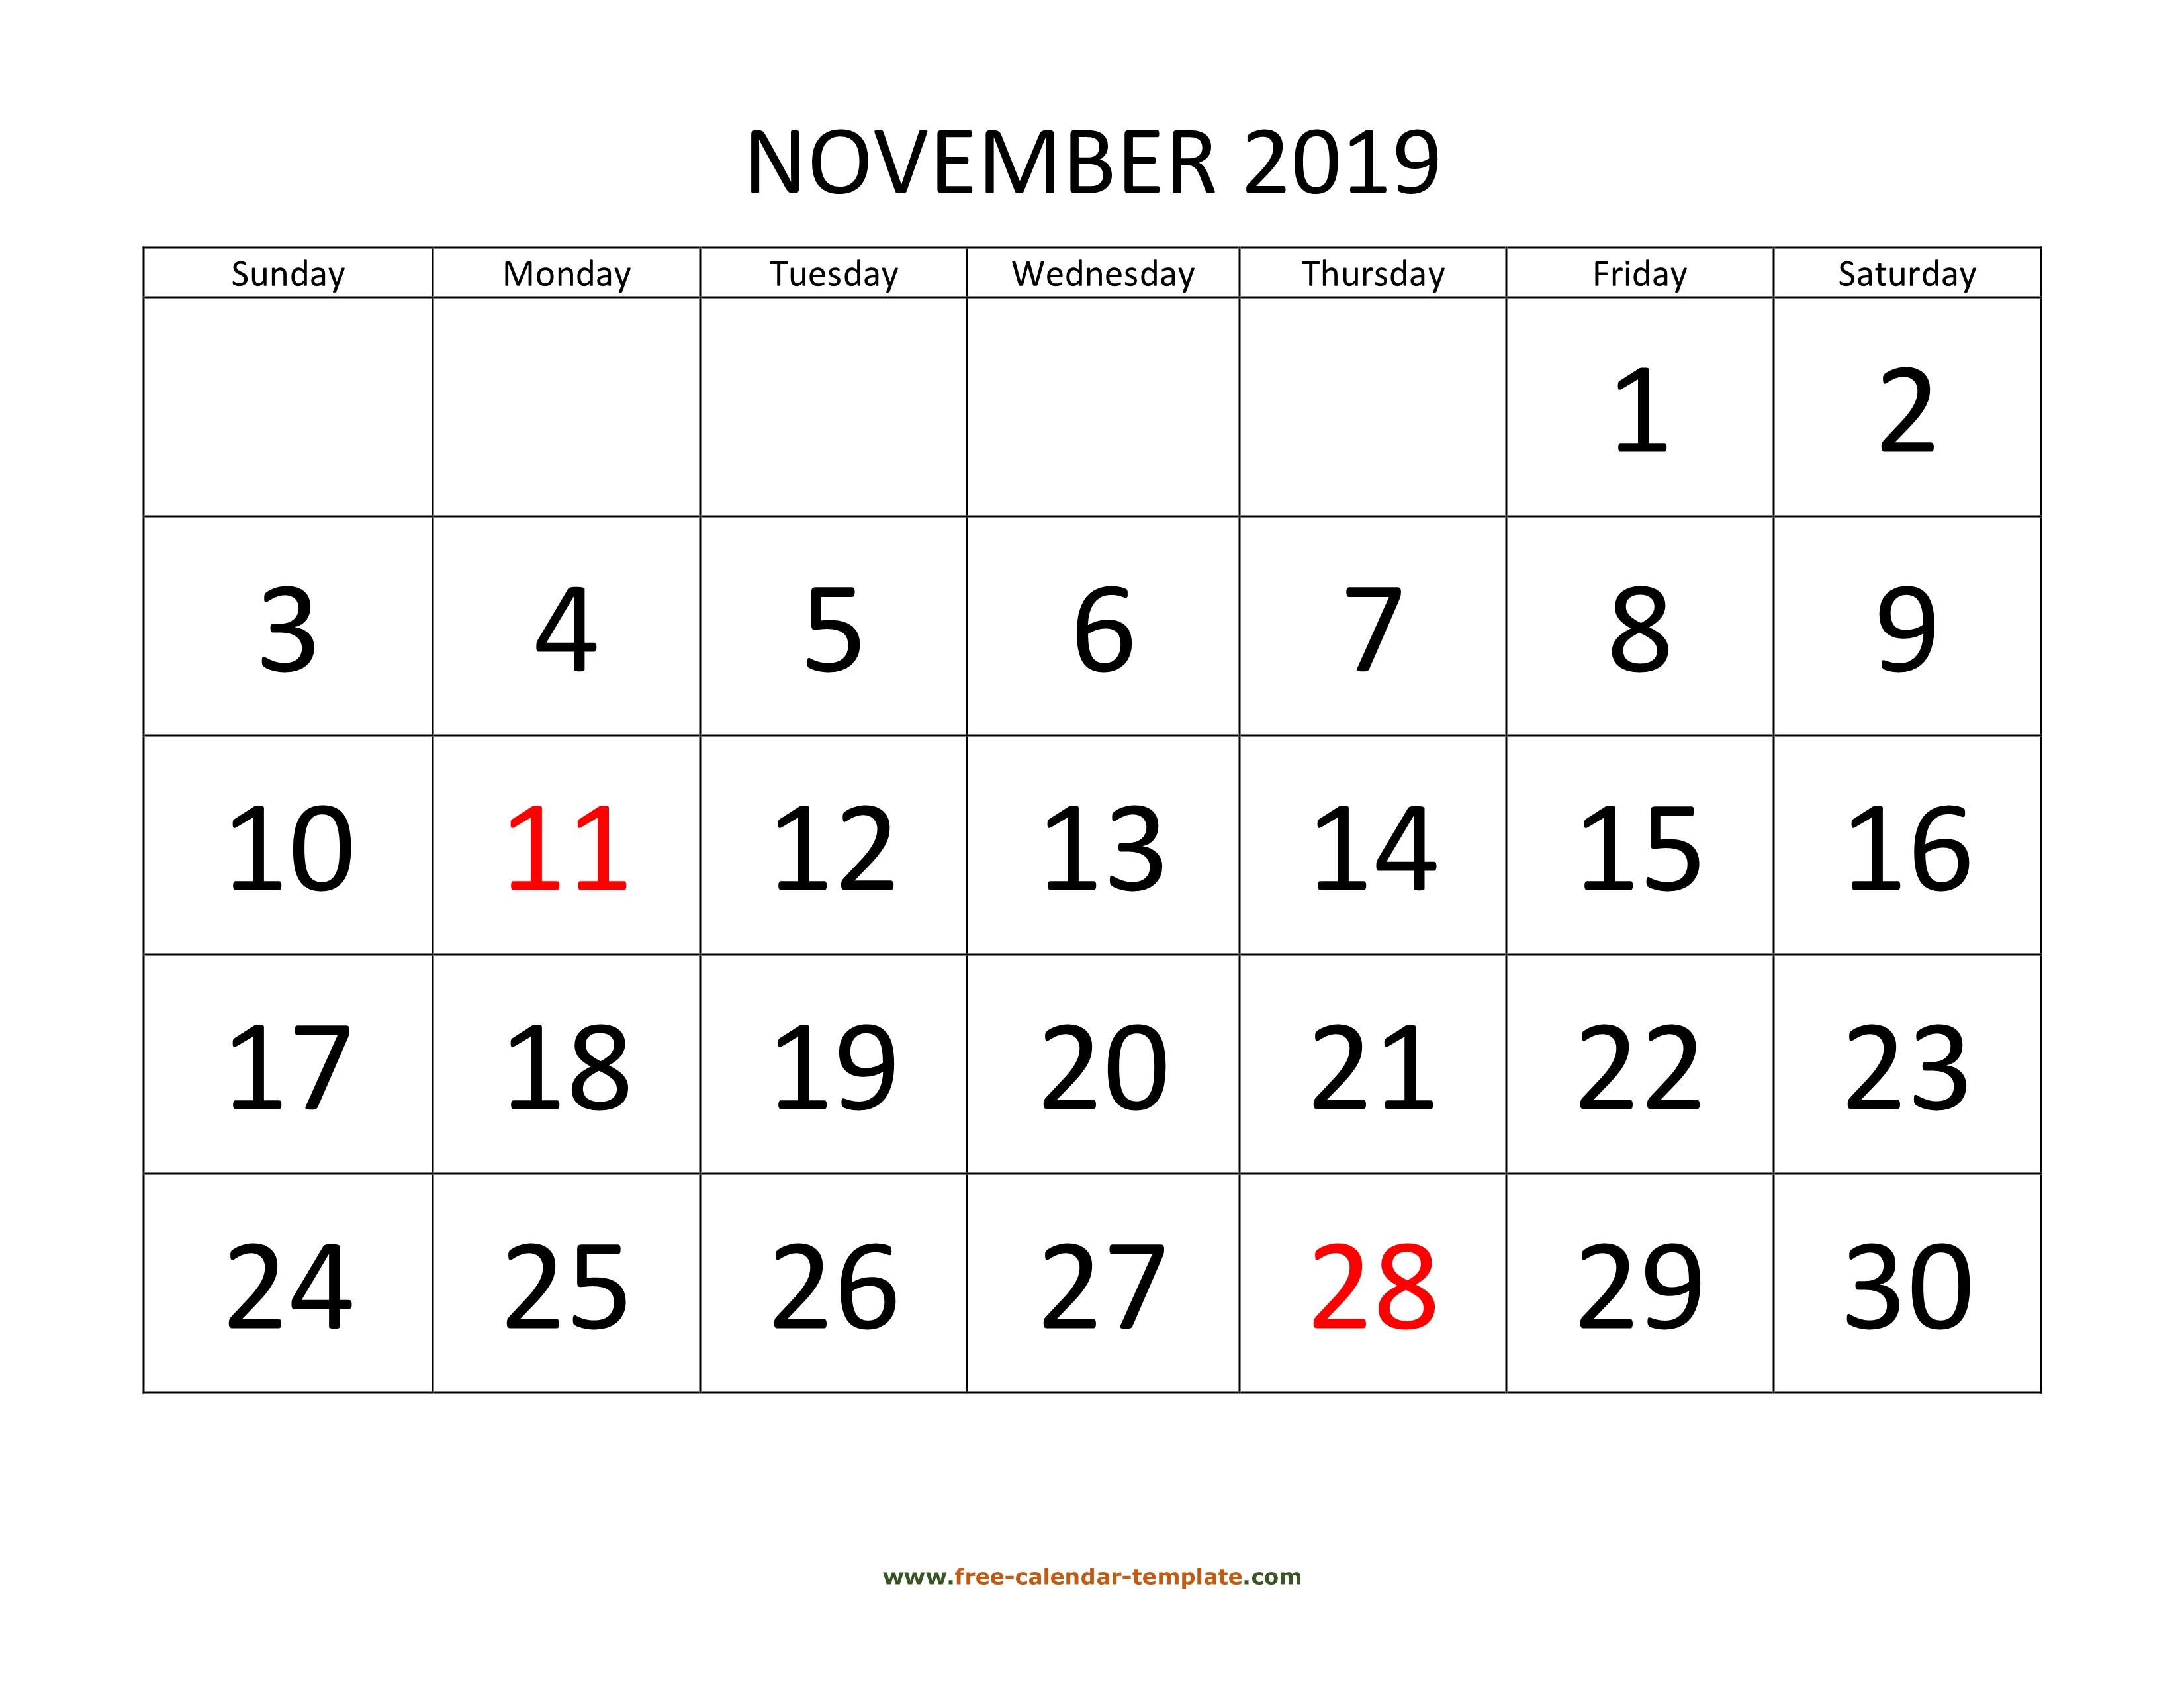 November 2019 Free Calendar Tempplate | Freecalendar intended for Calendar With Large Squares